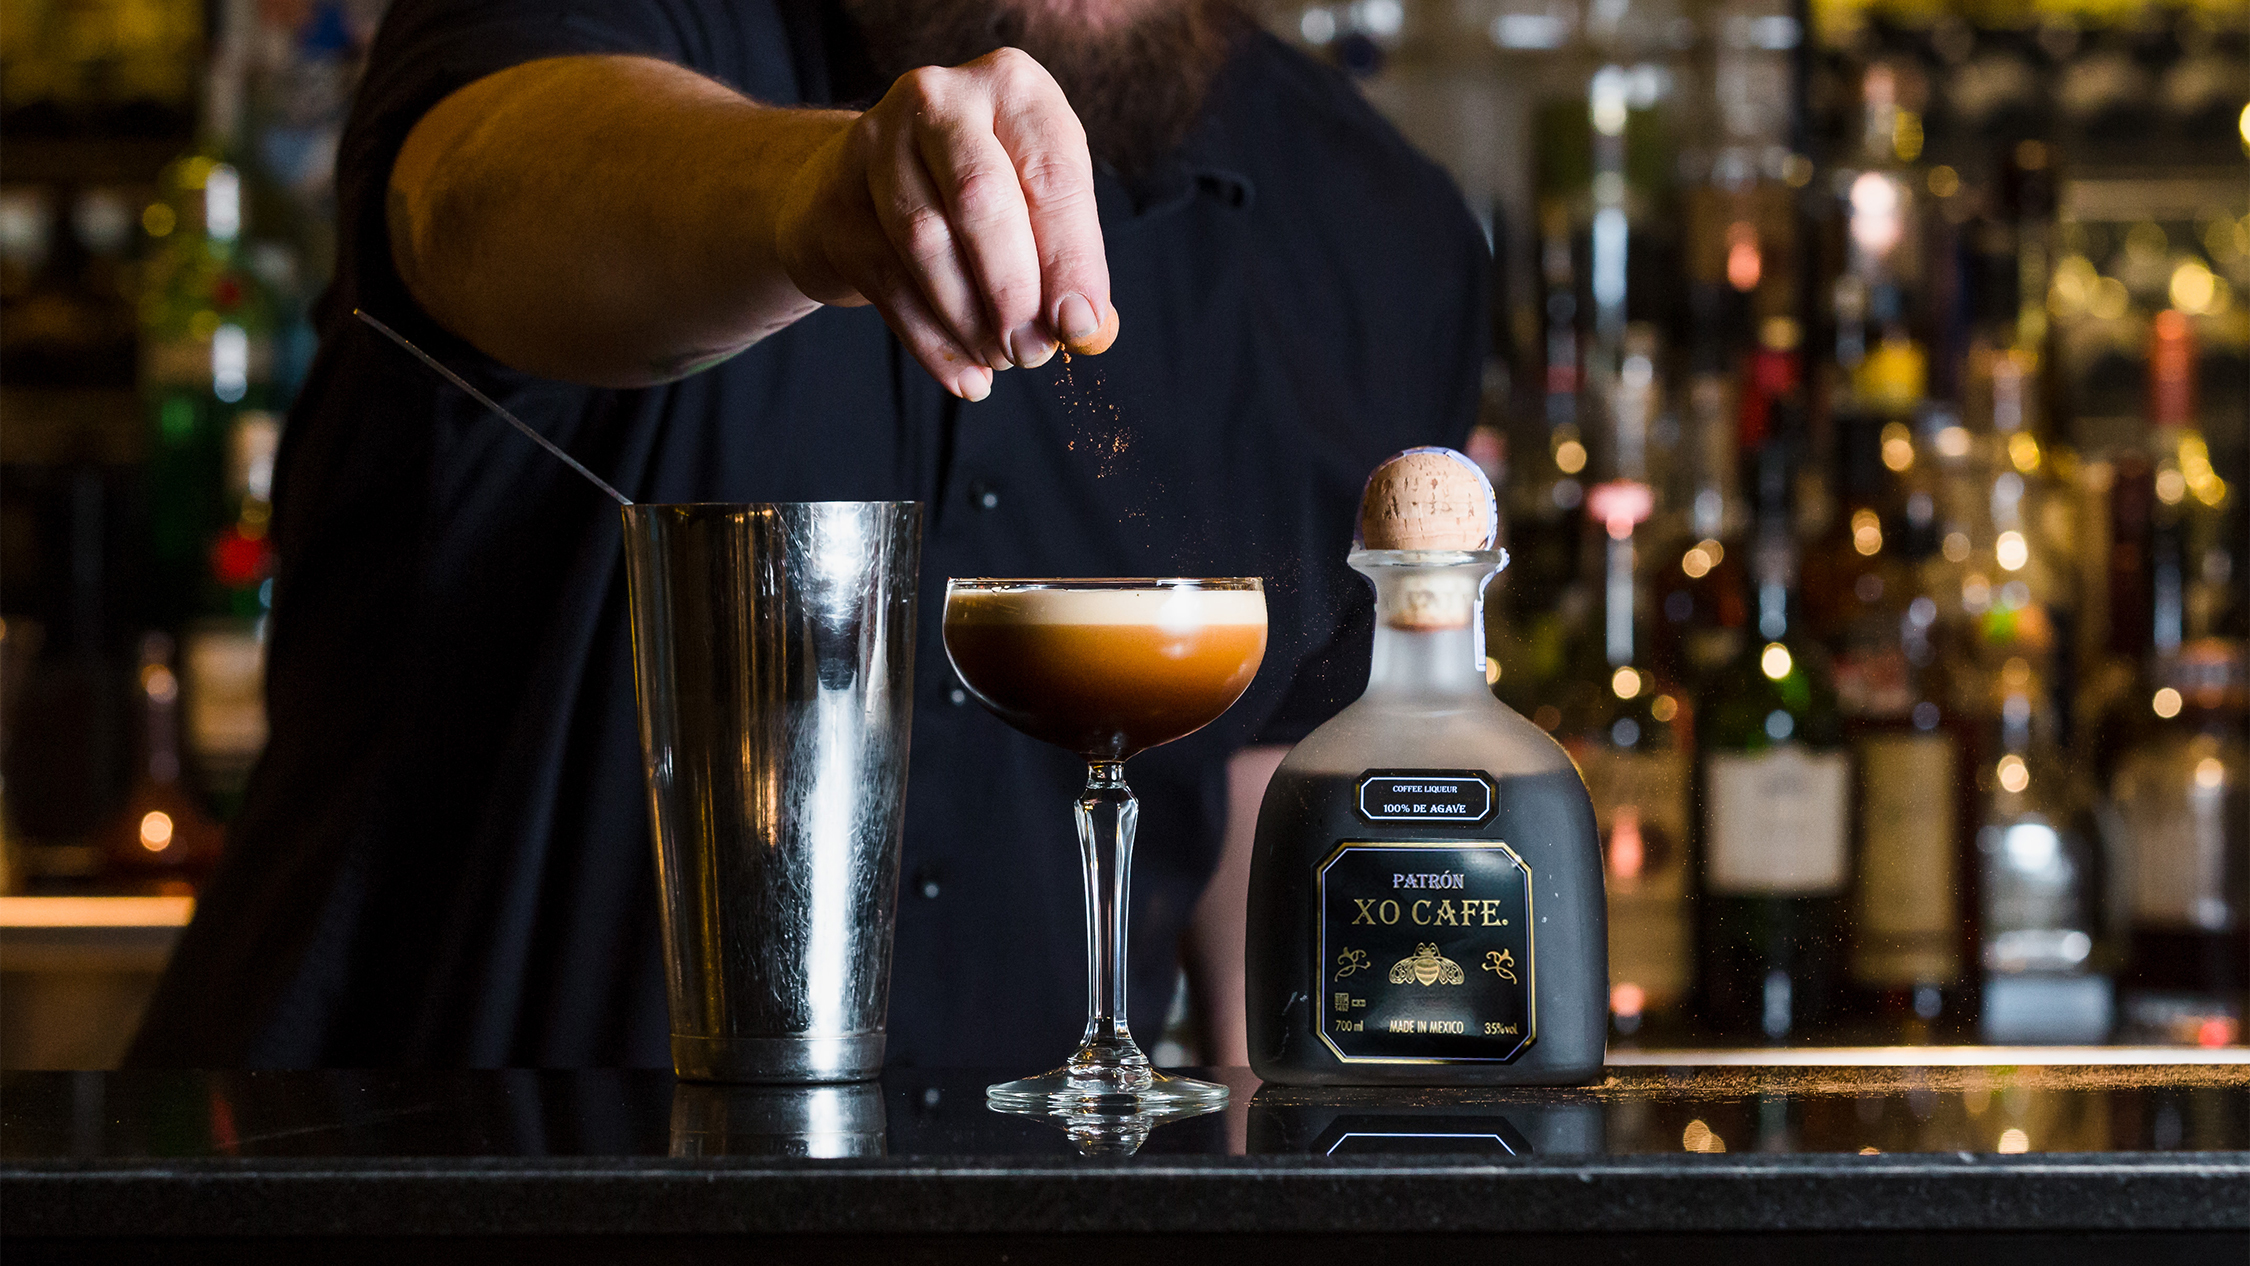 Vote for your fave Espresso Martini and win a $200 bar tab